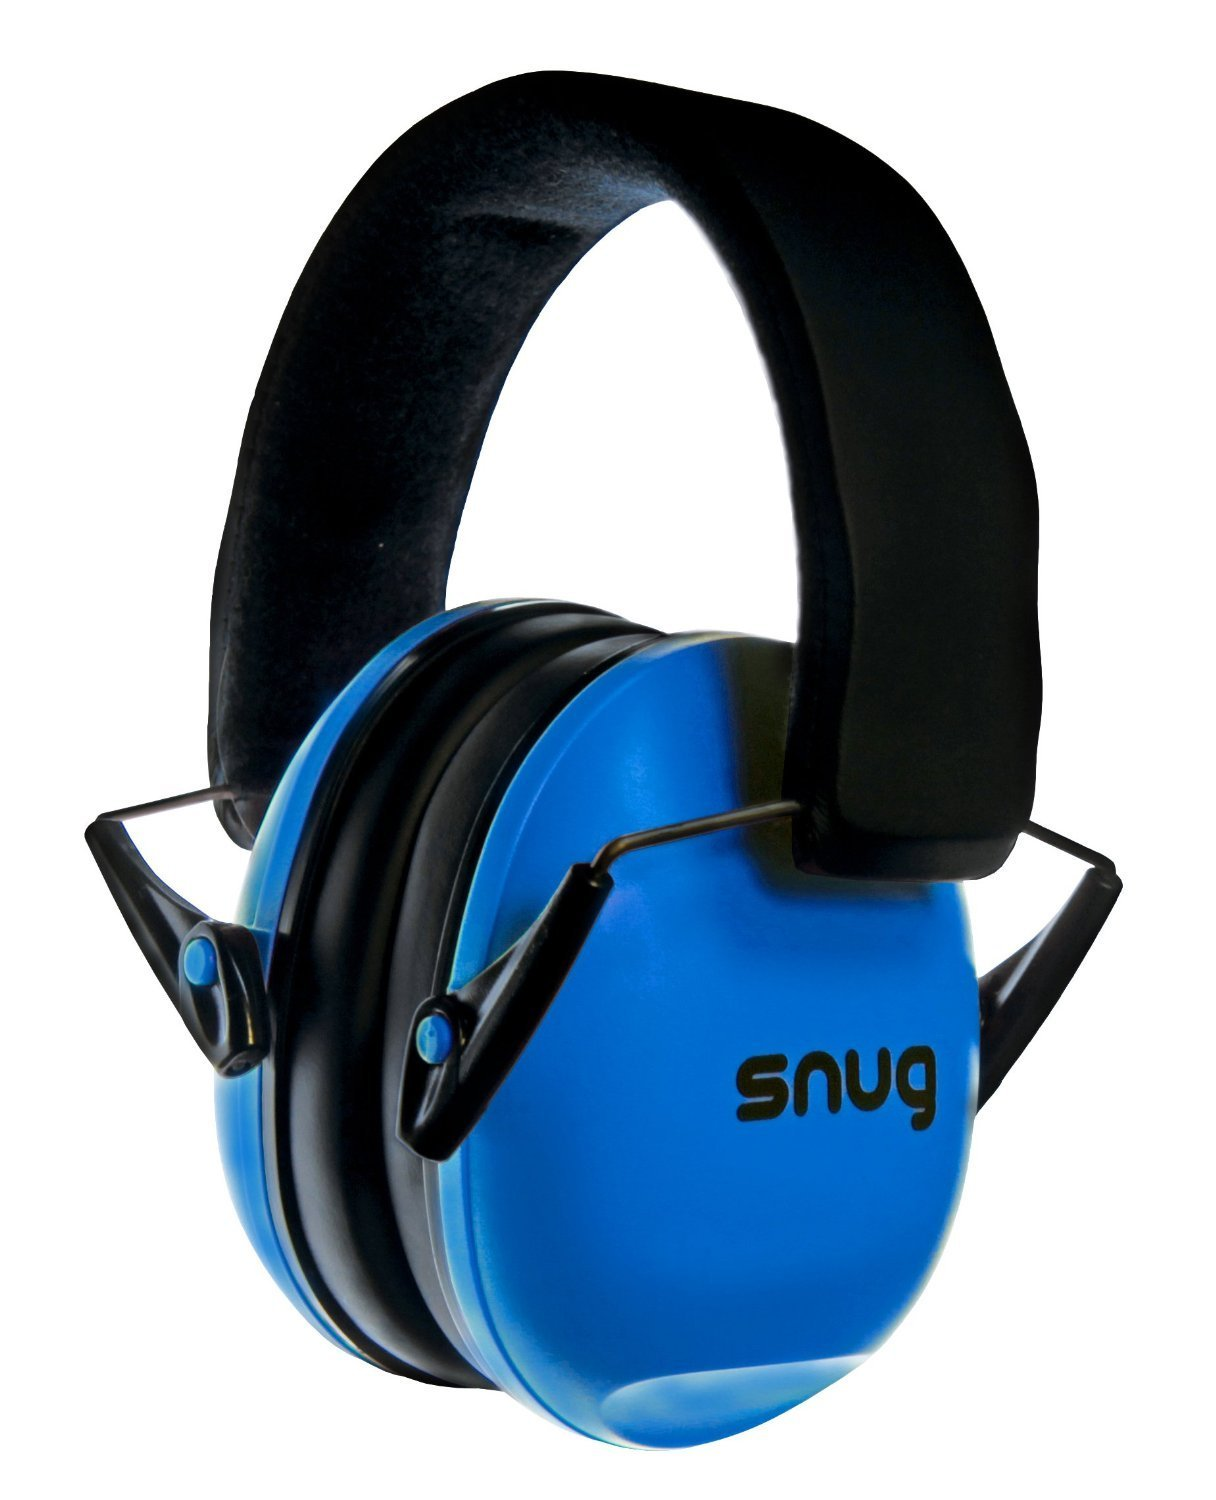 Snug Kids Earmuffs/Best Hearing Protectors – Adjustable Headband Ear Defenders For Children and Adults (Original Blue)